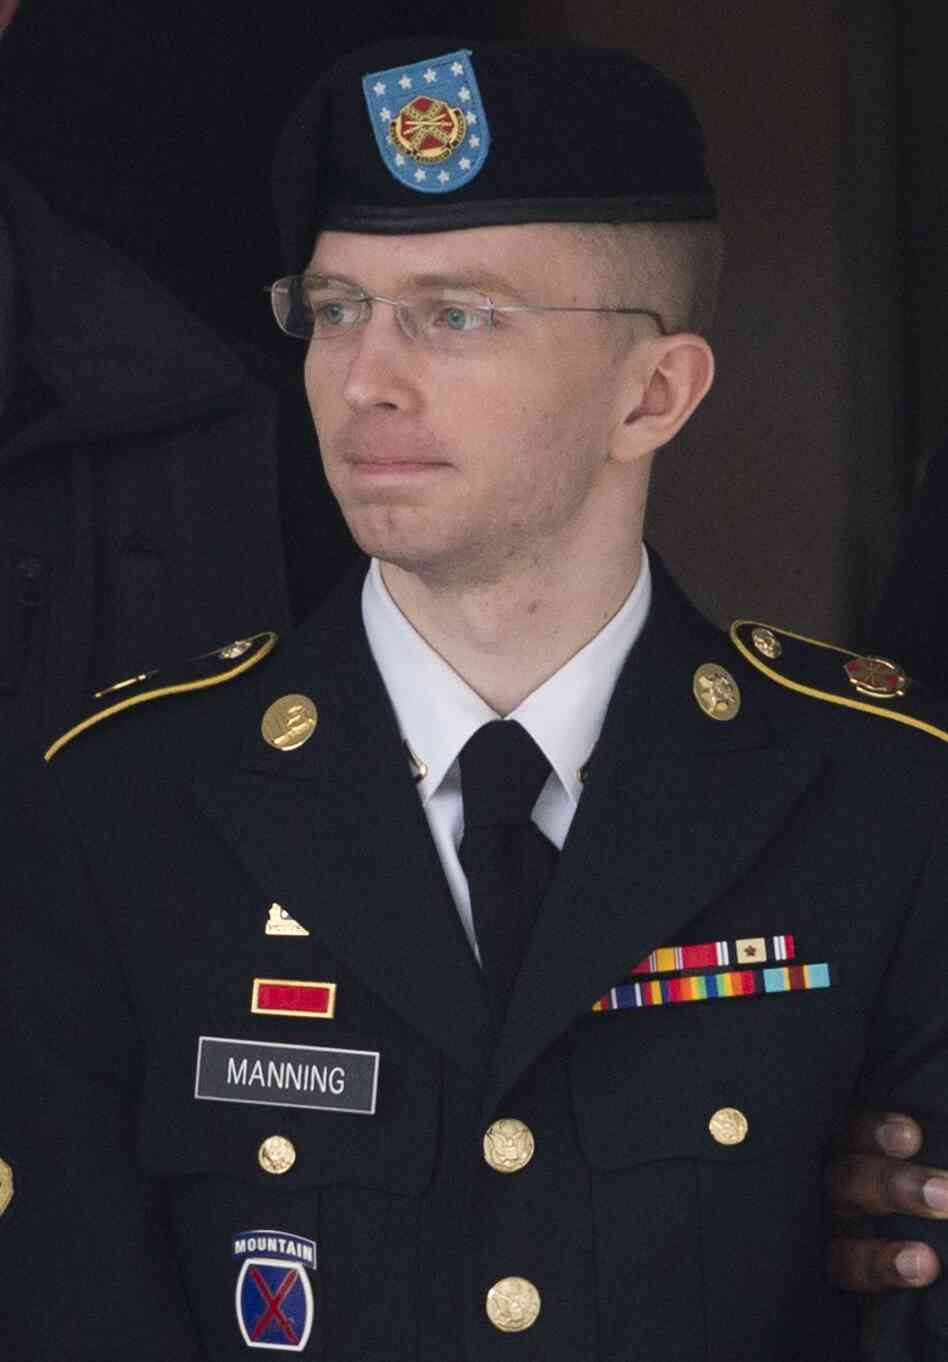 U.S. Army Pfc. Bradley Manning at Fort Meade, Md., on Tuesday.